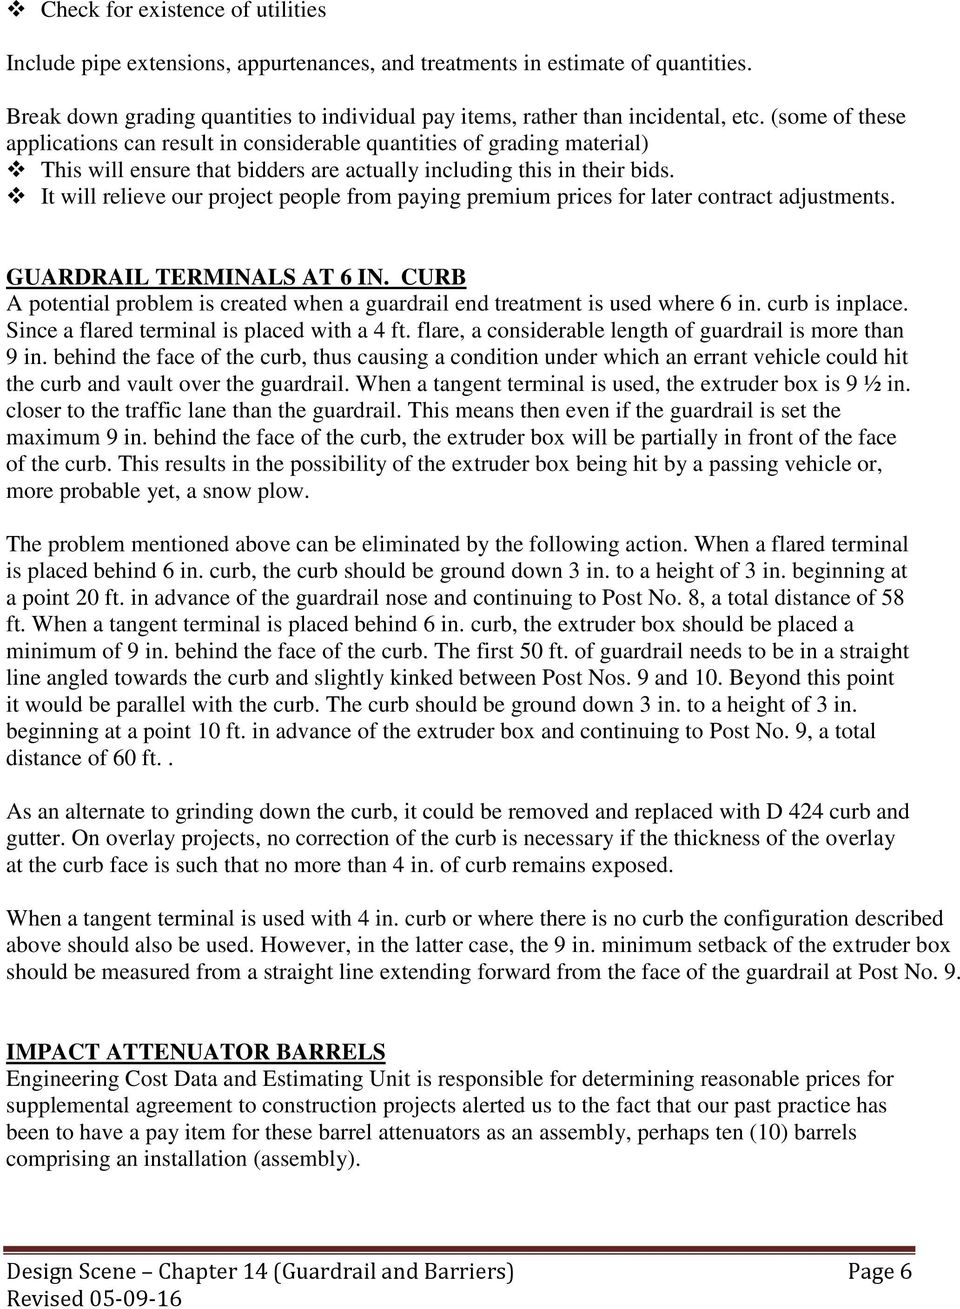 CHAPTER 14: GUARDRAIL and BARRIERS - PDF